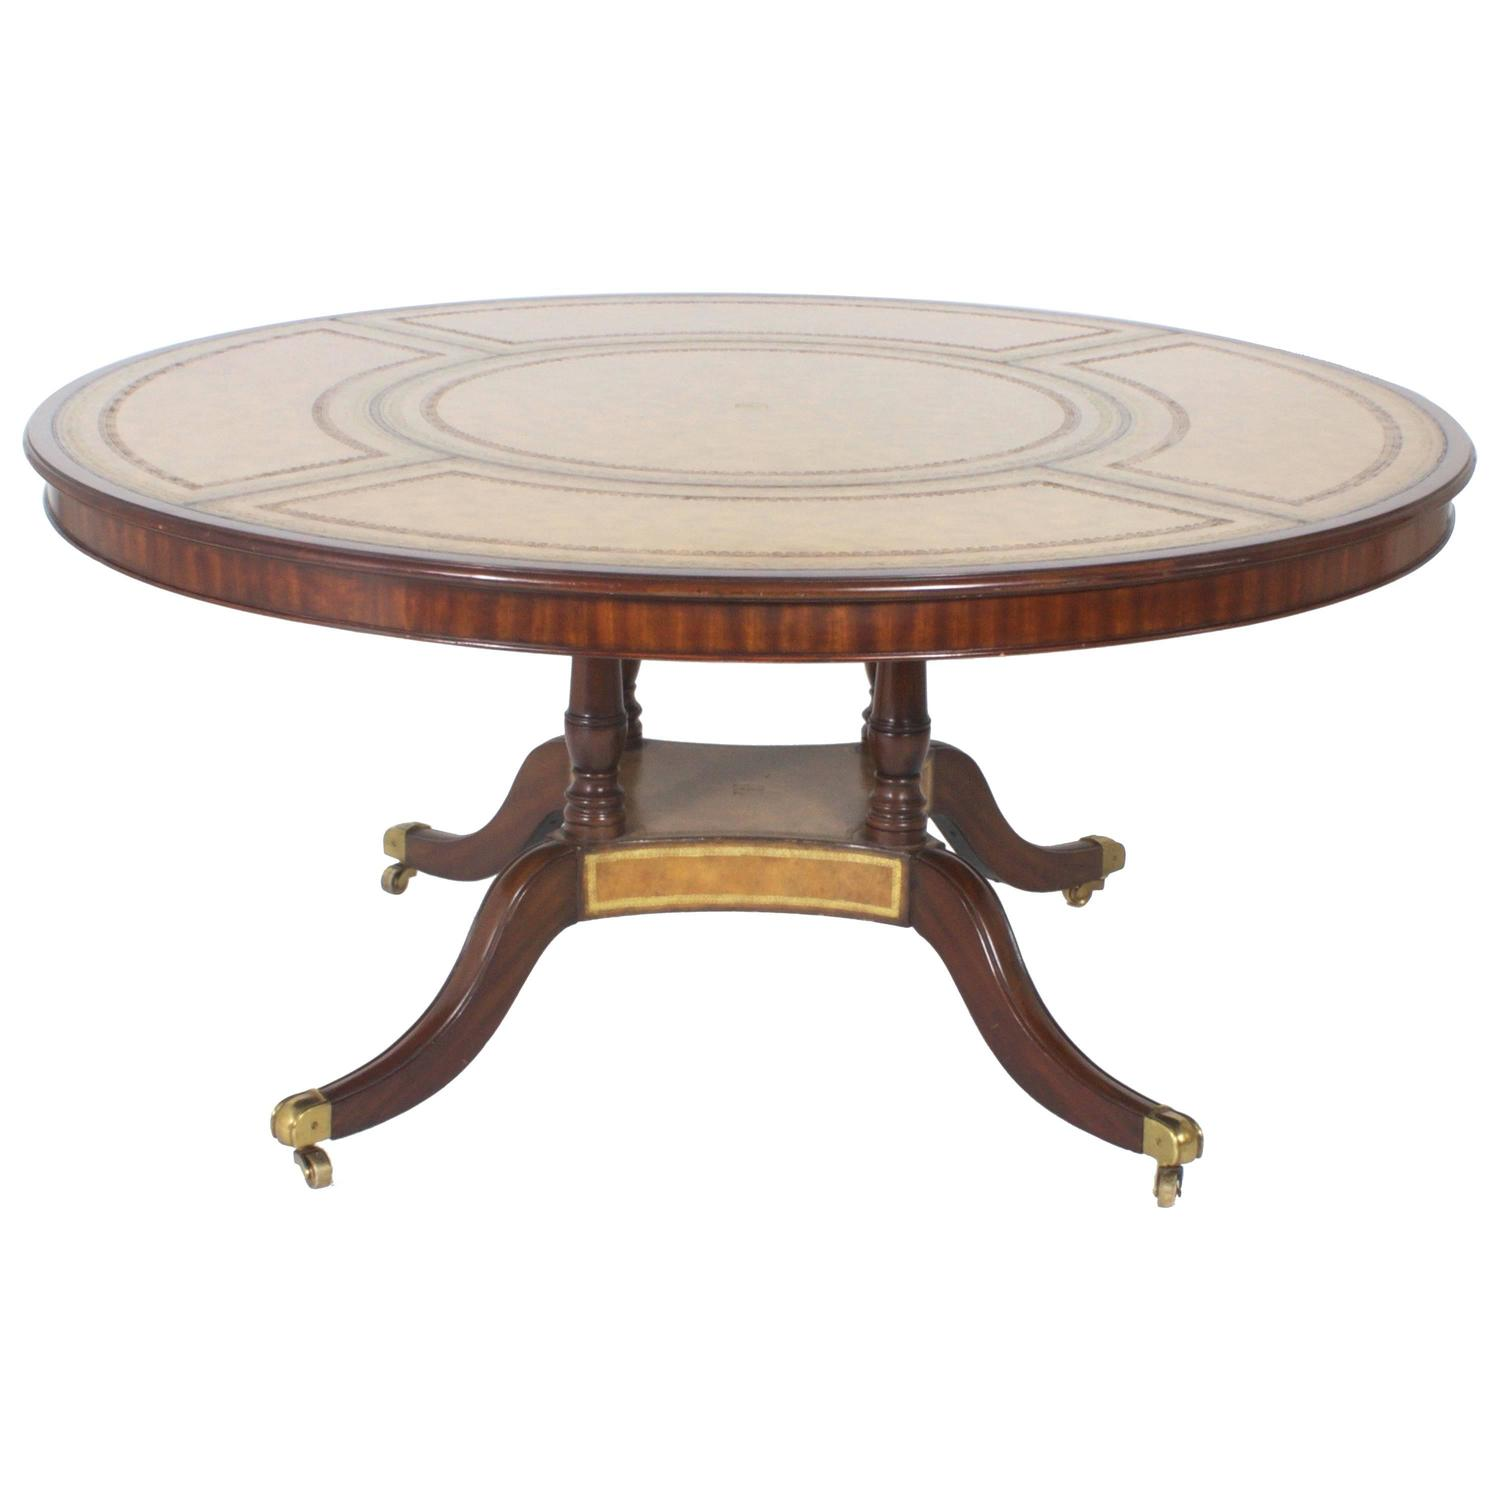 Round Leather Top Dining or Library Table For Sale at 1stdibs